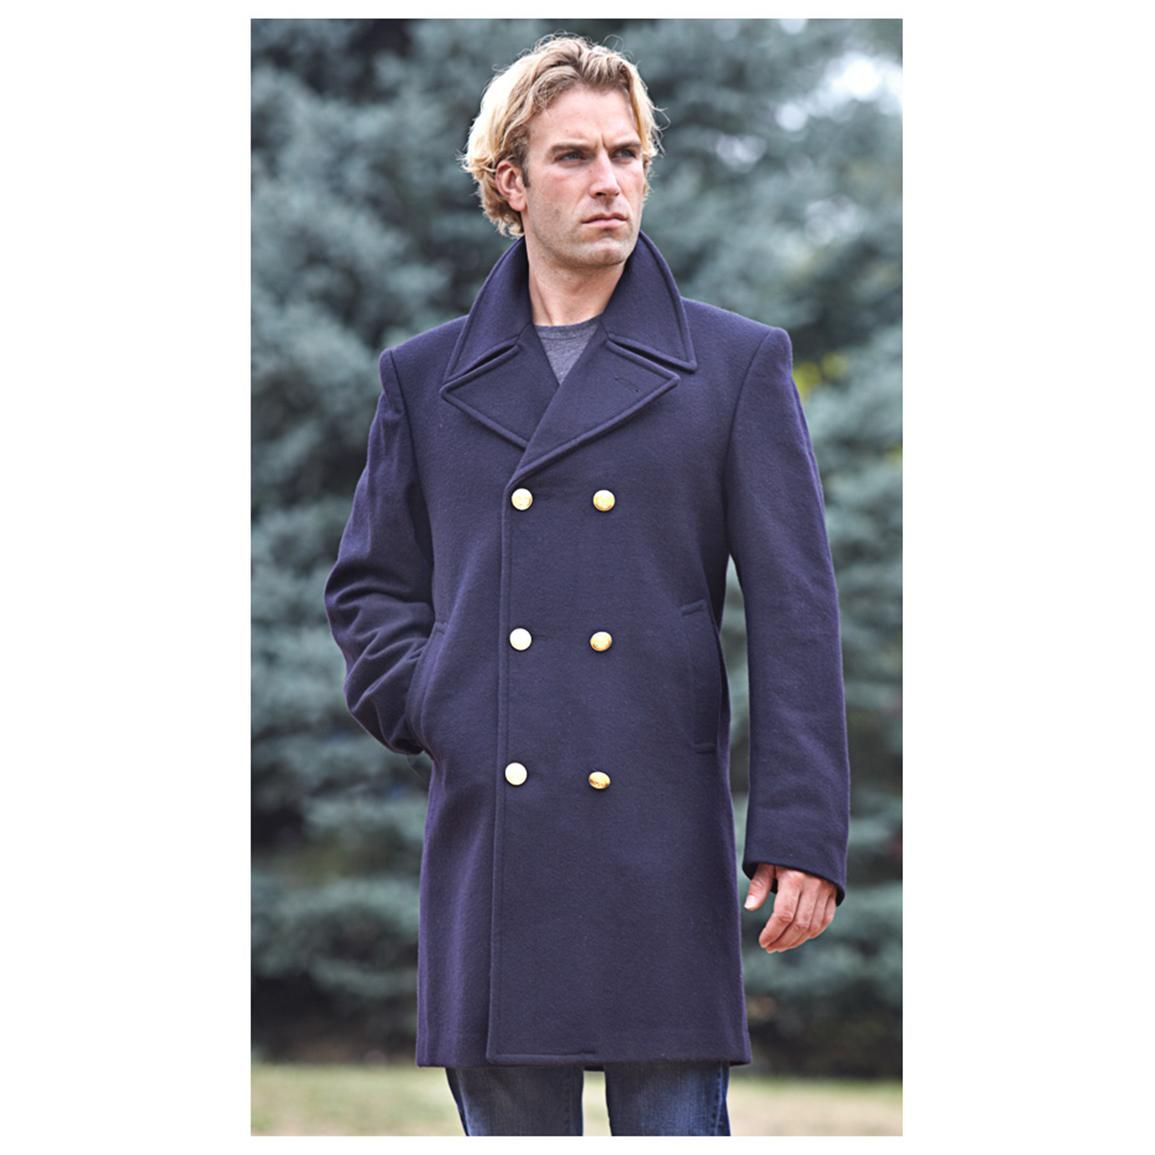 New Italian Military Surplus Navy Dress Peacoat | Clothes I Like ...